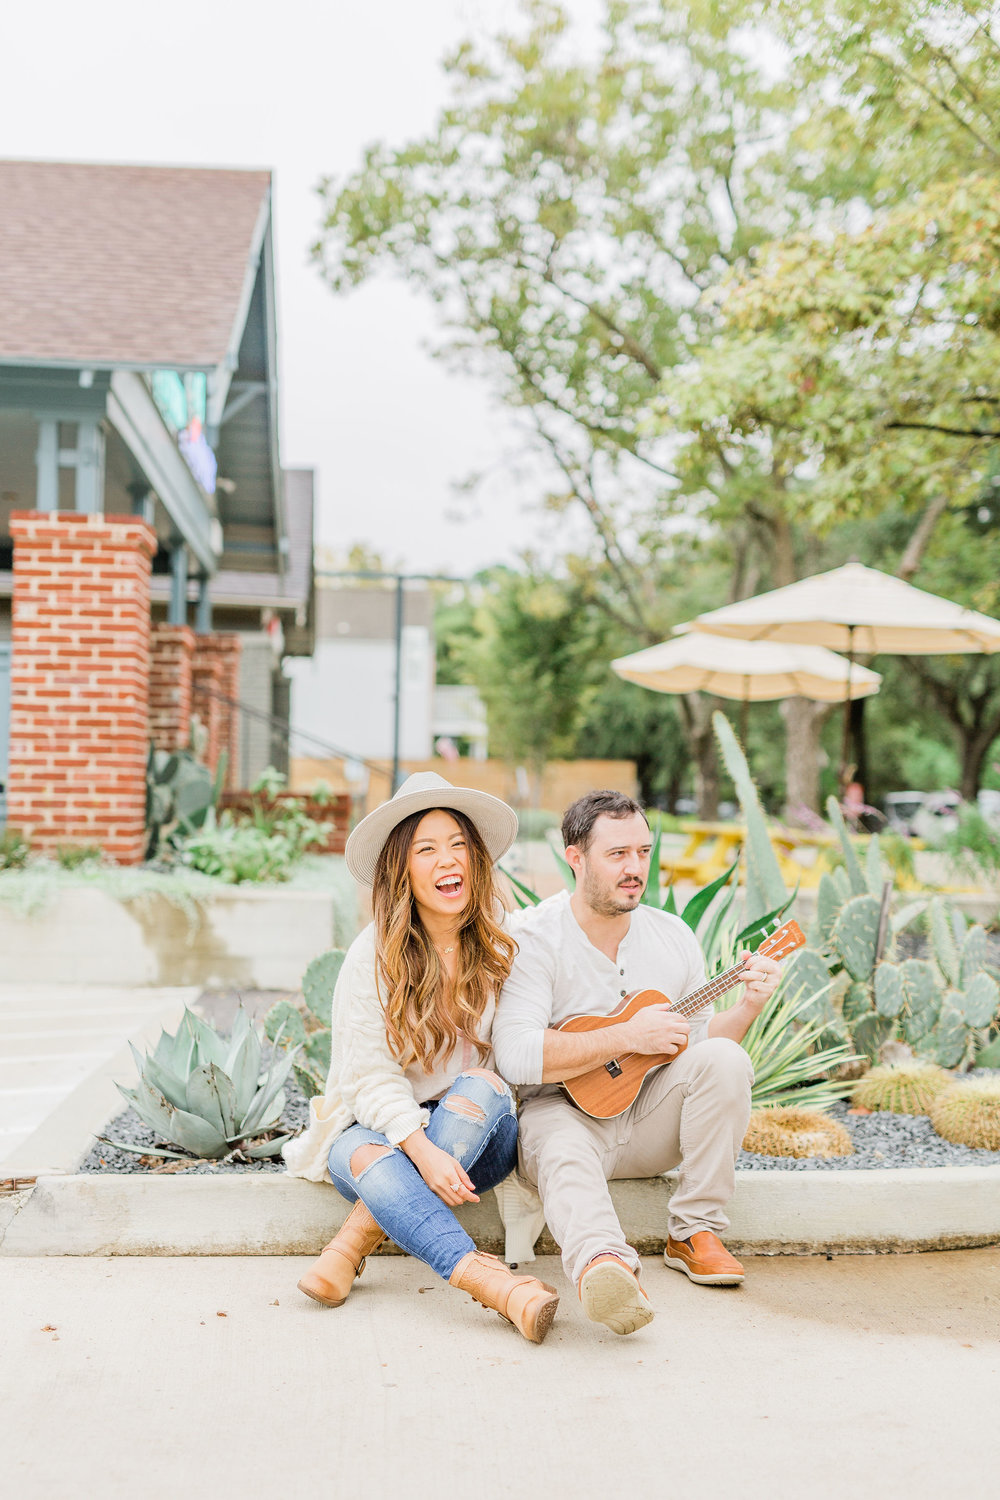 5 New Fall Romantic Date Ideas in Houston You Should Try Right Now Family Travel Blogger Comfortiva Torrence